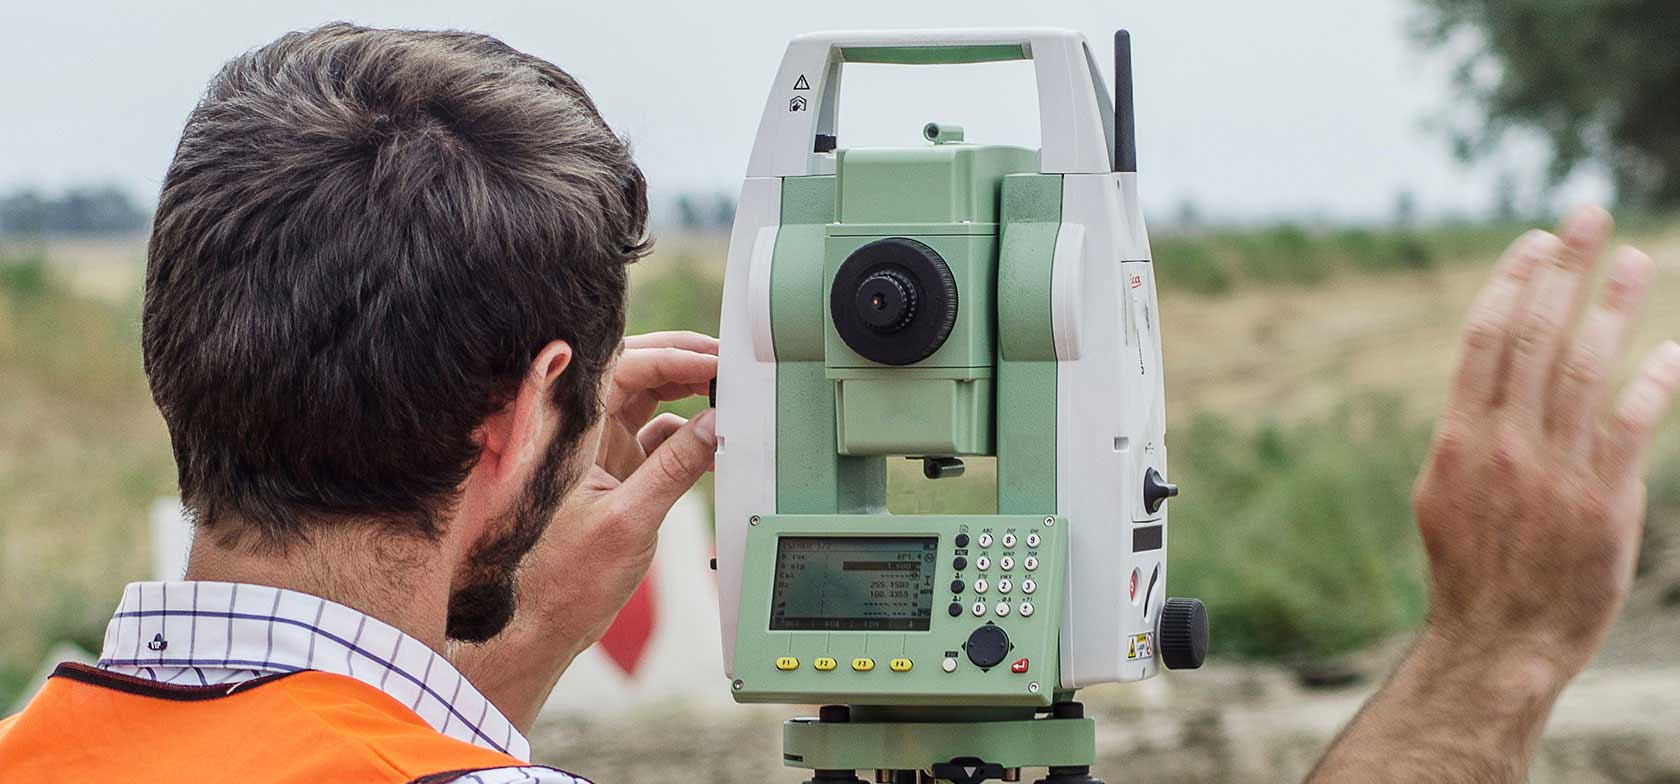 A land surveyor uses surveying equipment in the field wearing an orange safety vest